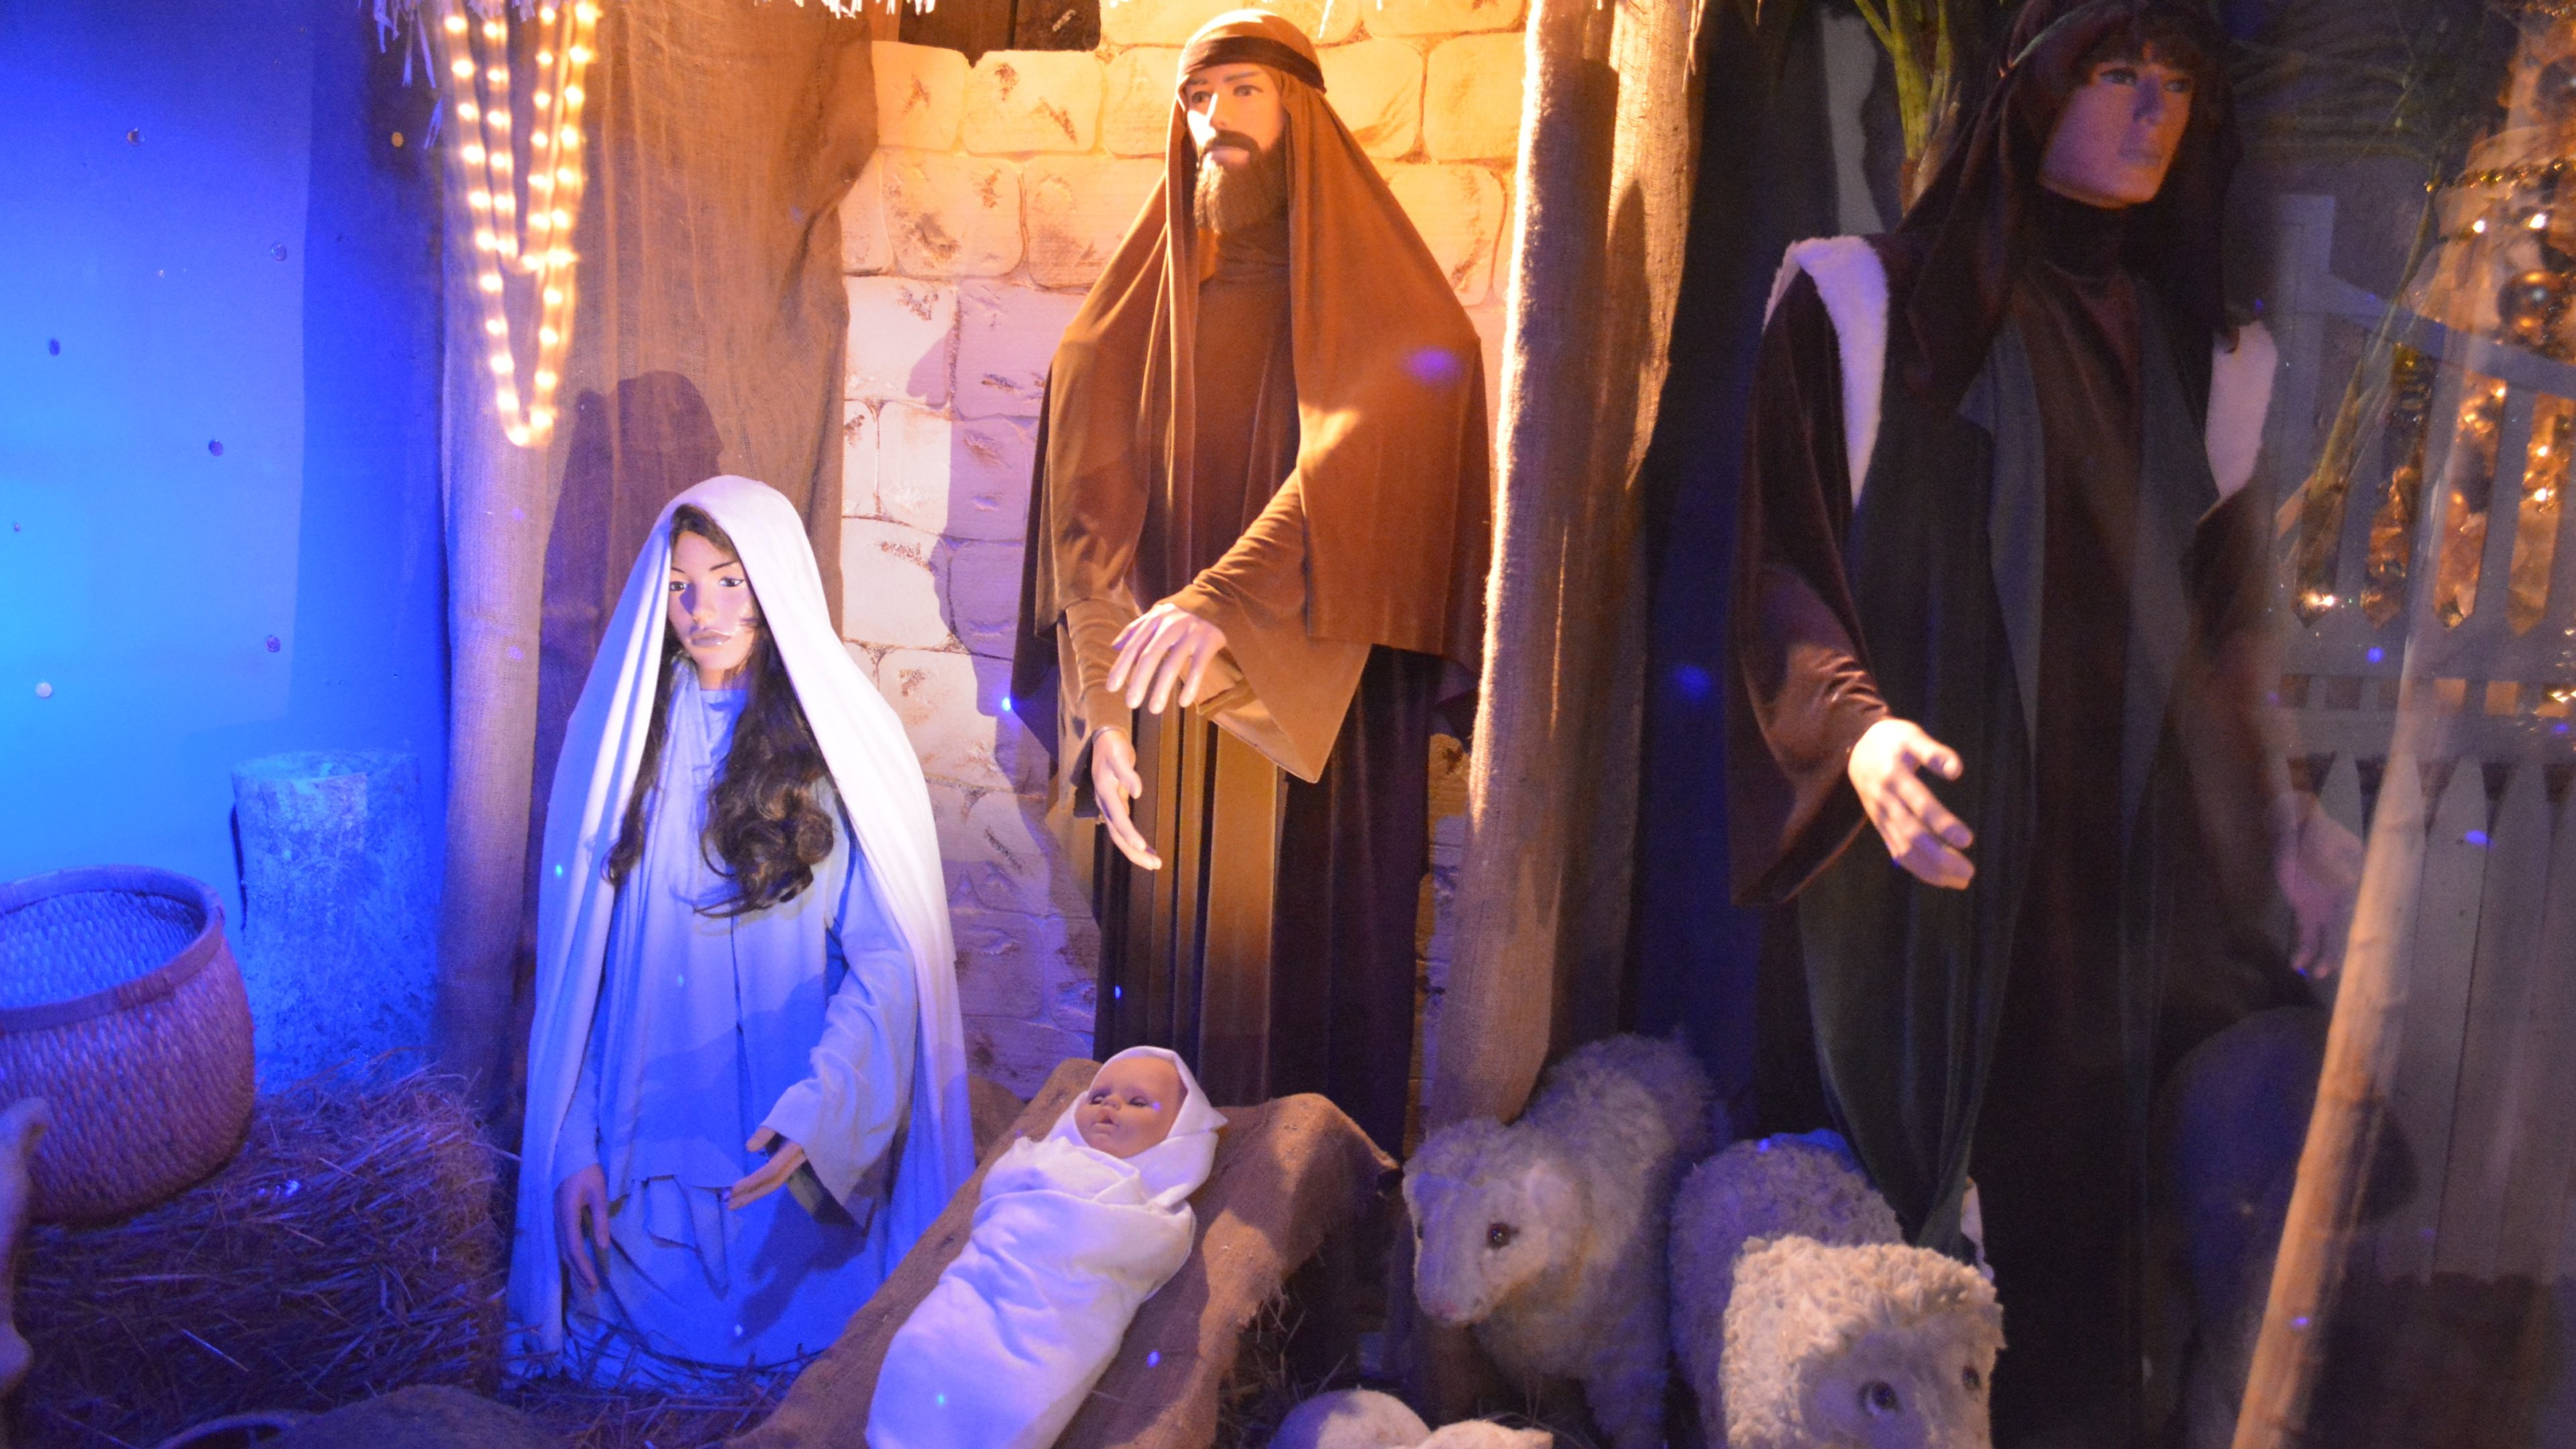 3840x2160 Birth of Jesus scene at every Christmas HD Wallpapers. 4K Wallpapers